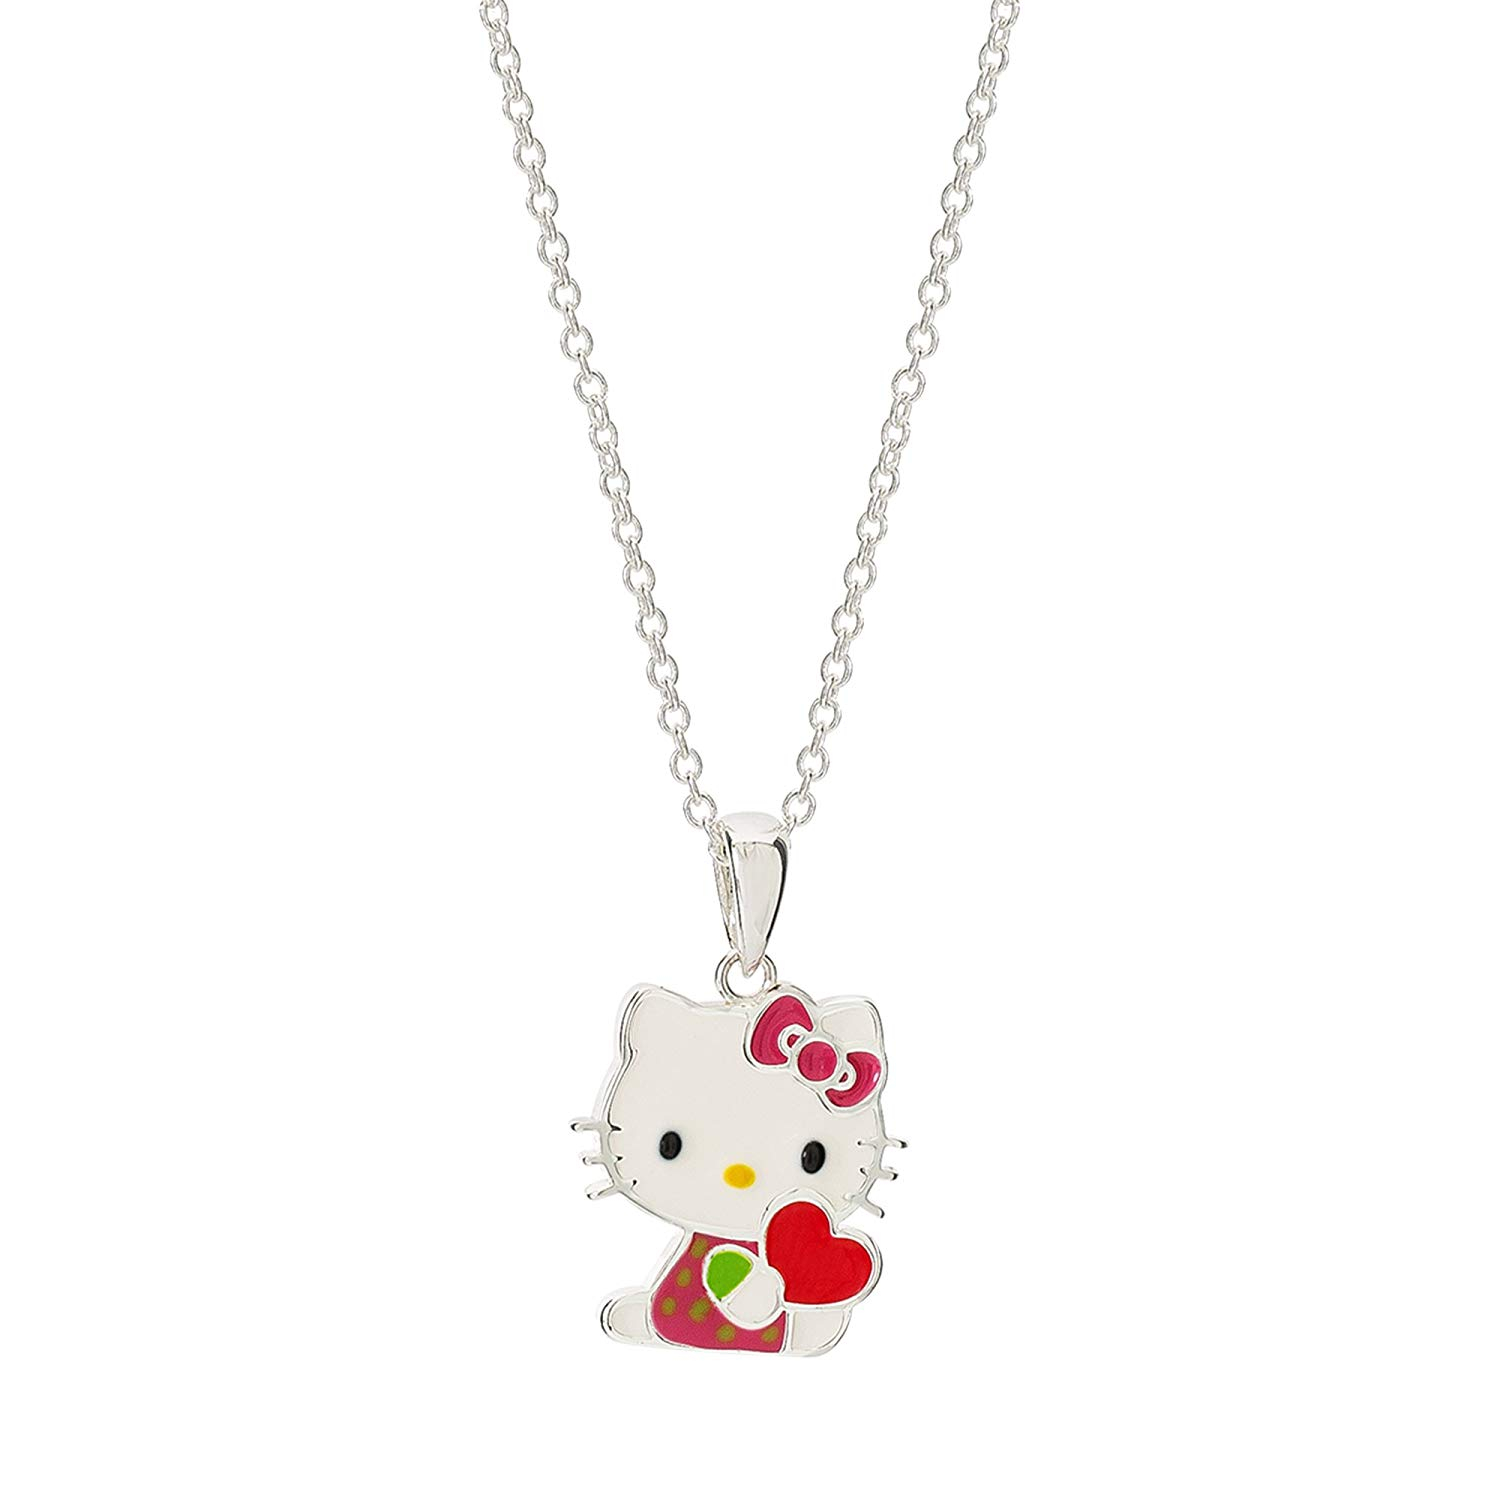 8803fd1f2 Get Quotations · Hello Kitty Silver Plated Enamel Kitty with Heart Pendant  Necklace